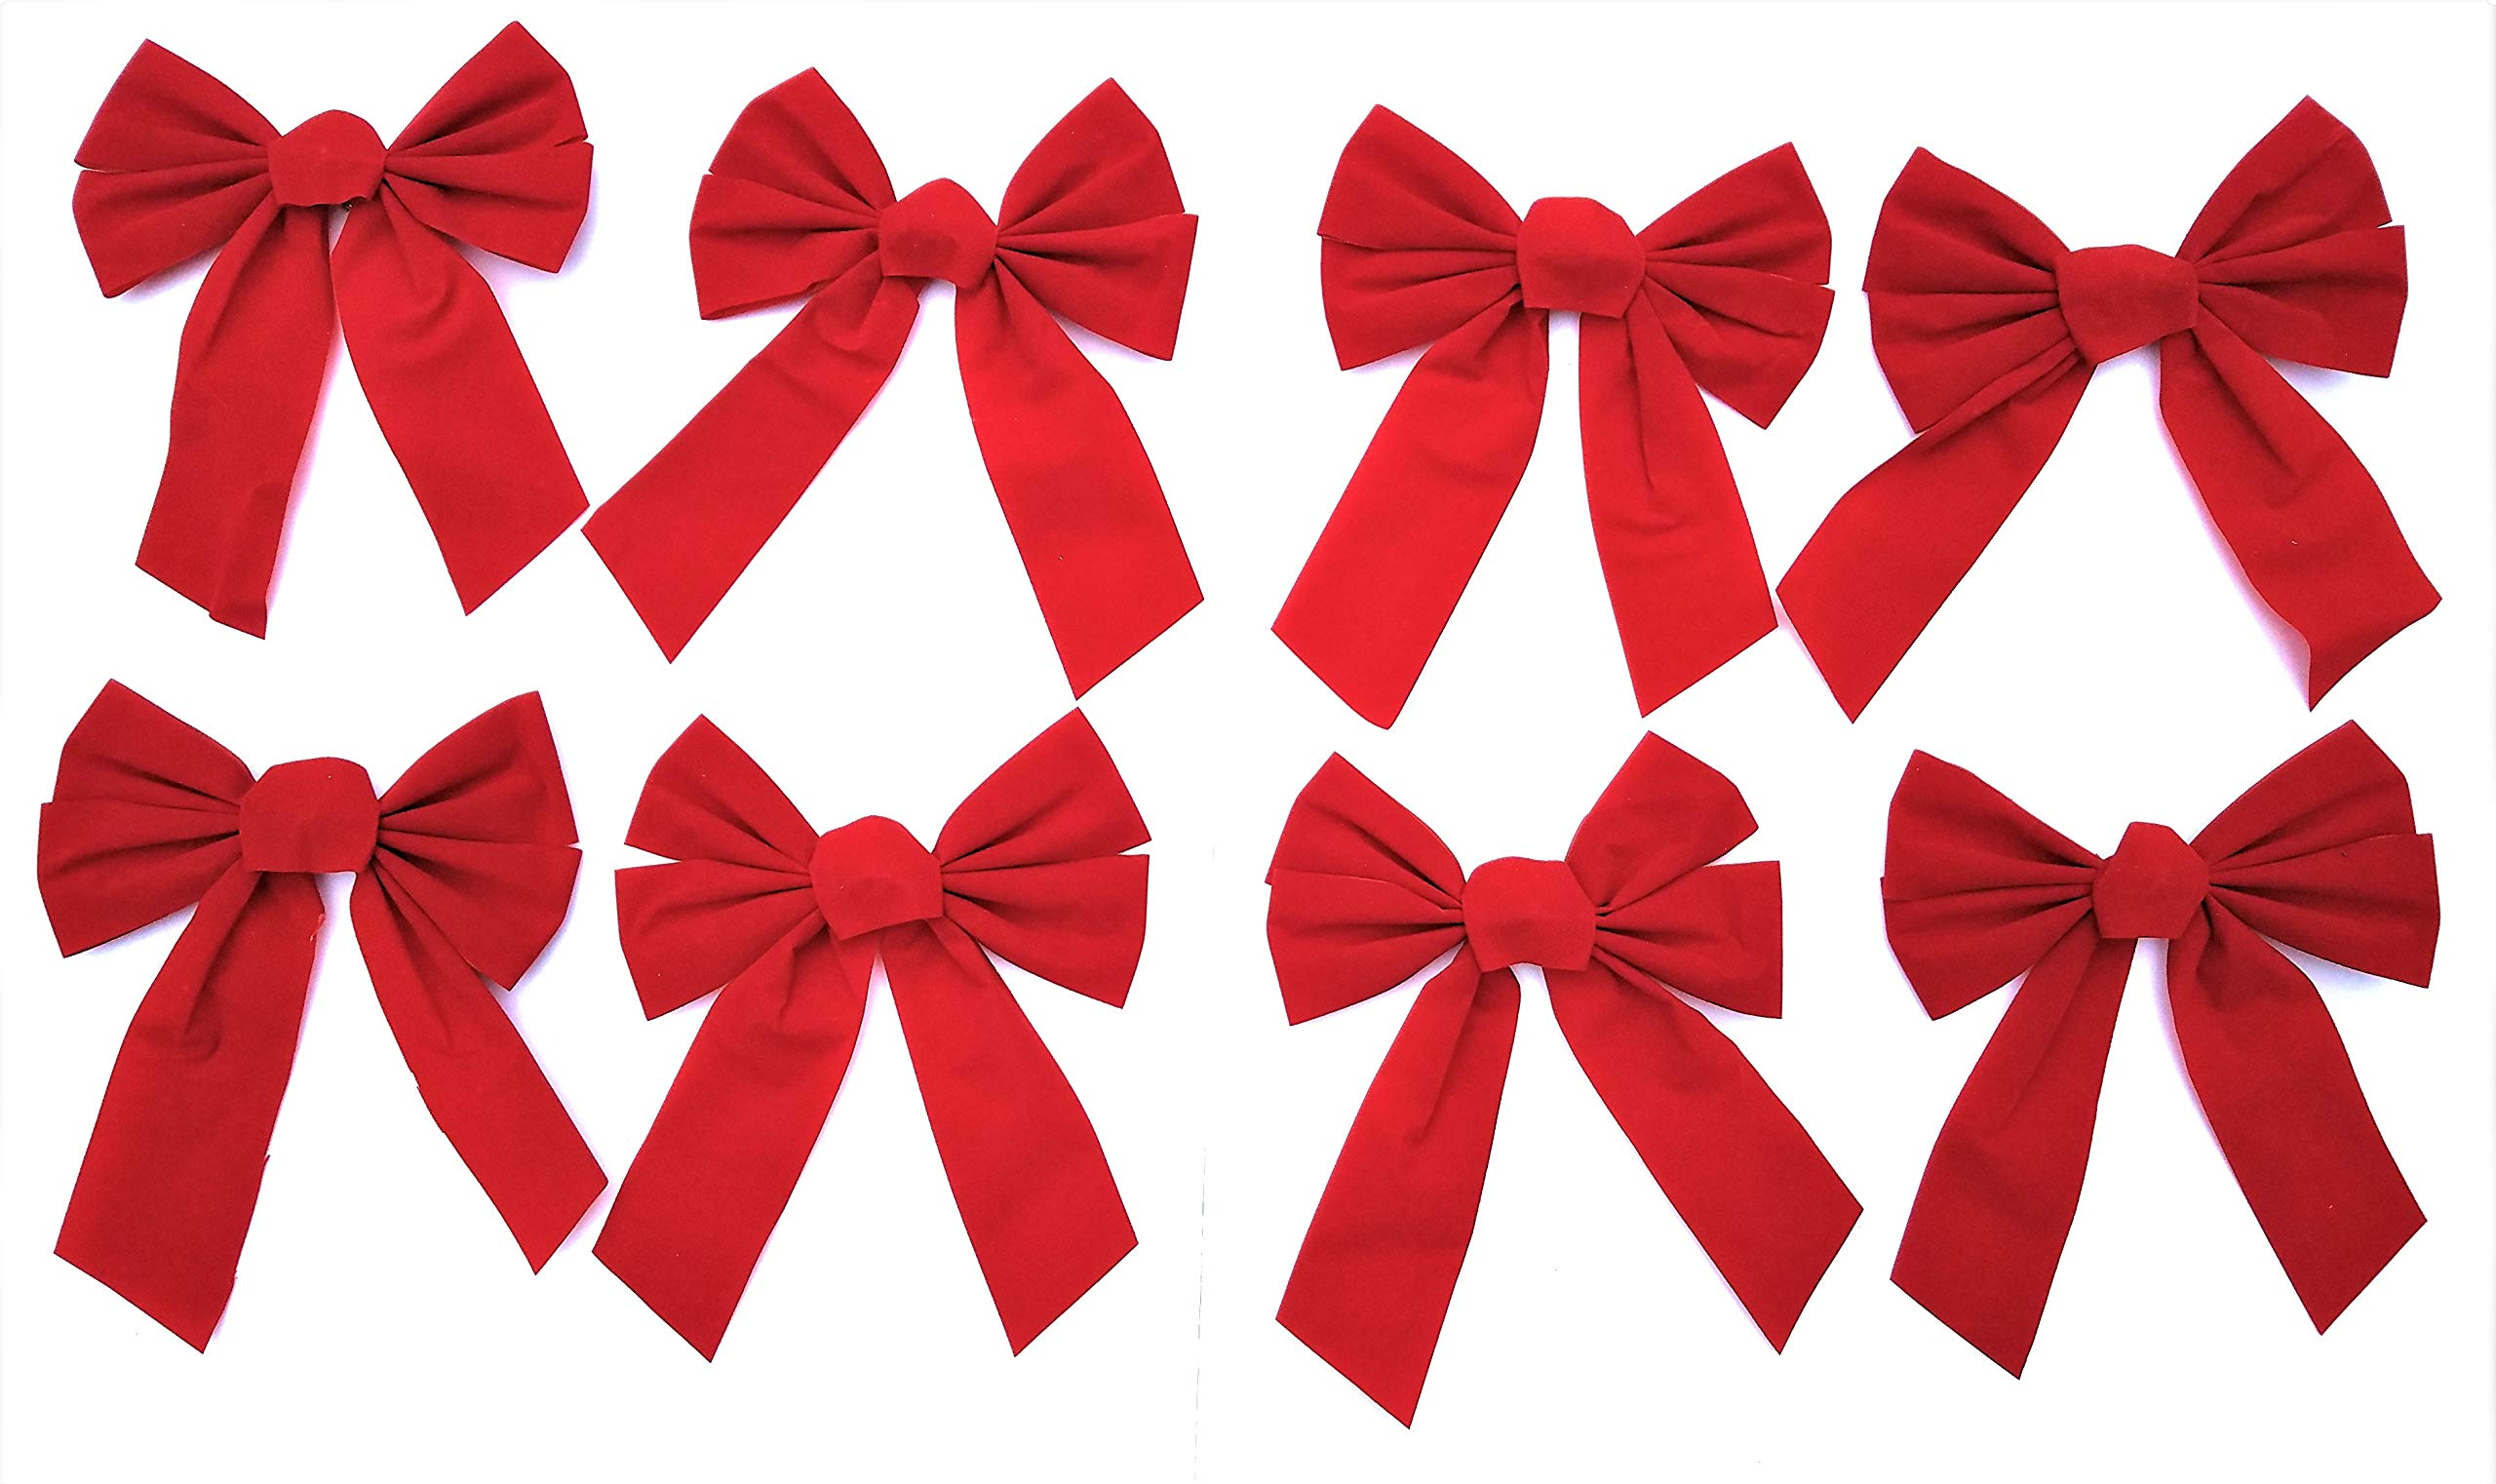 """8 Pack Red Velvet Christmas Holiday Bows- 7.9"""" Wide x 10"""" Long - Just The Right Size Bow for Home Decorating, Gift Baskets, Wreaths, Presents, Xmas Tree, Windows and More"""